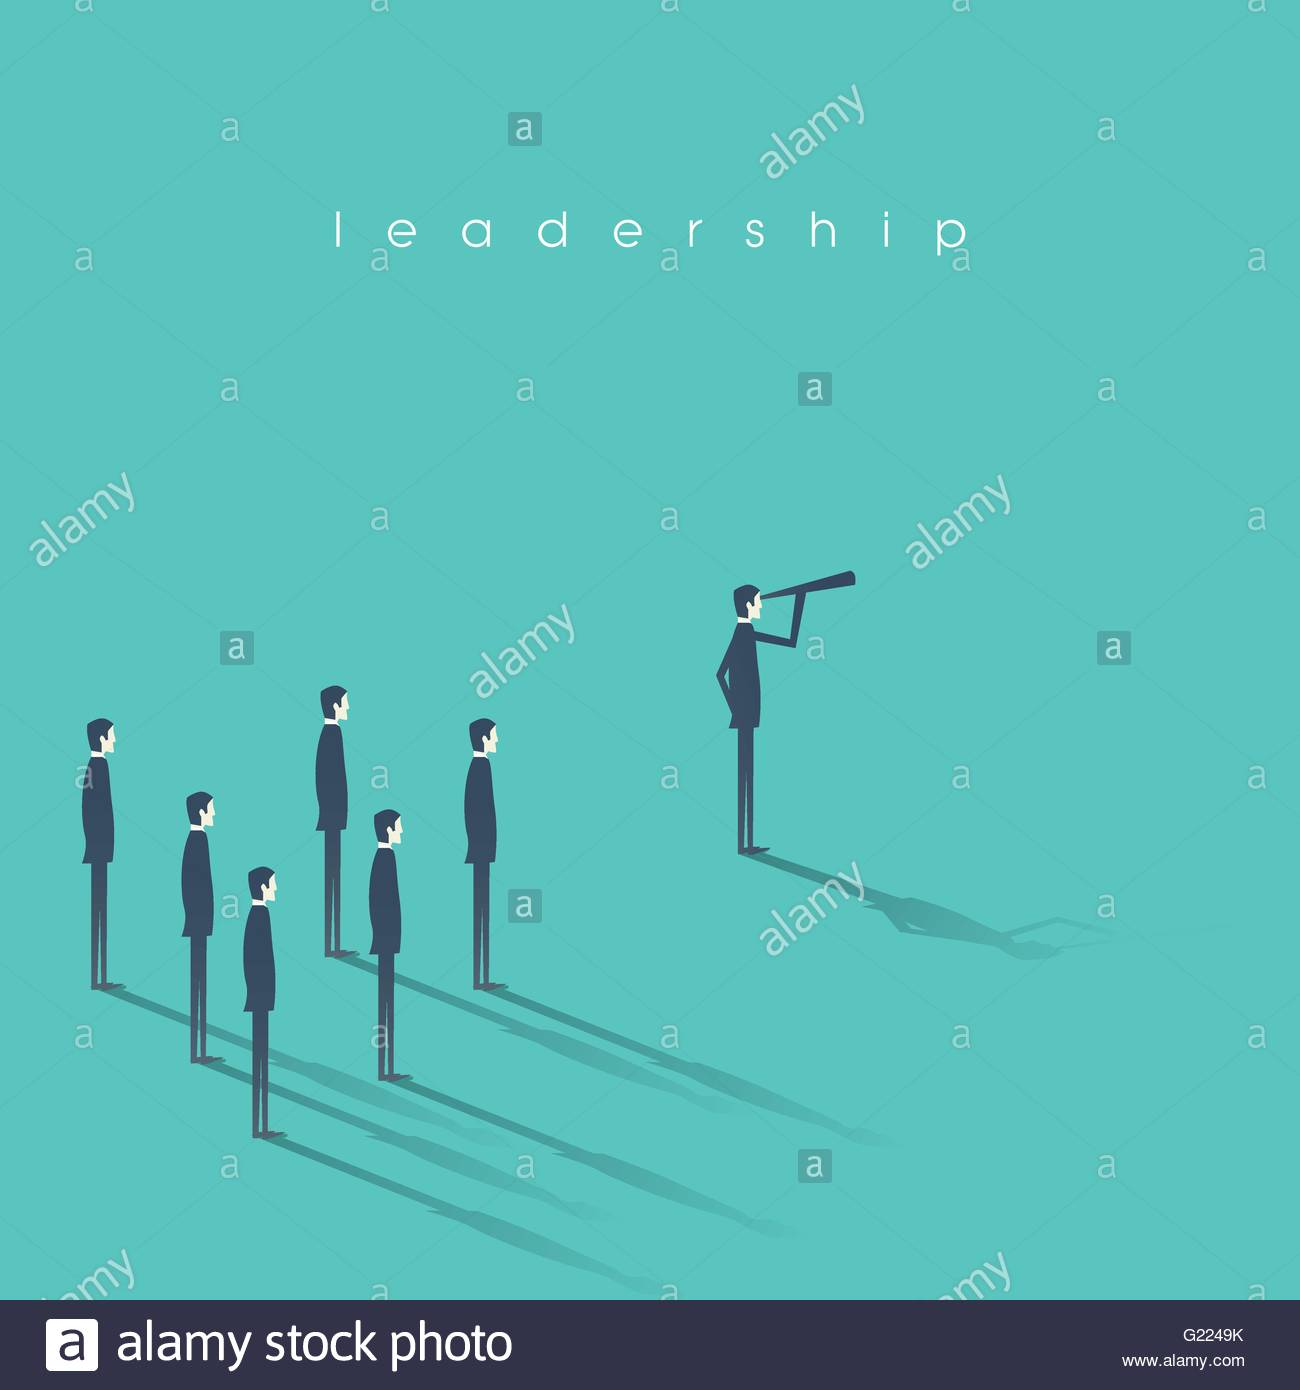 Business leadership concept illustration with businessman and telescope leading other men. Vision, success abstract - Stock Image